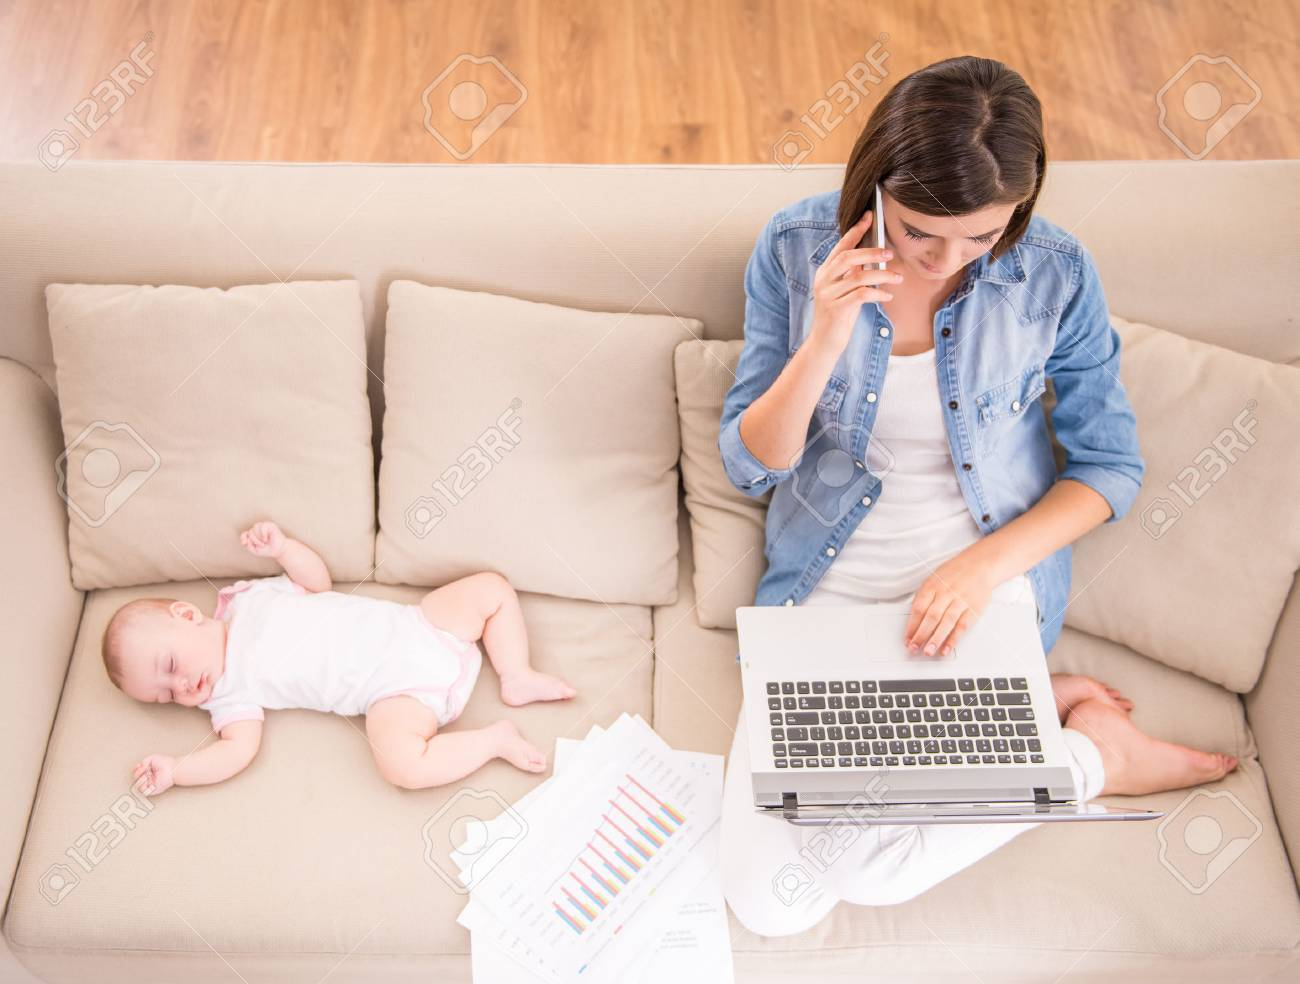 Top view of young woman is working at home while her little baby is sleeping. Standard-Bild - 48108677